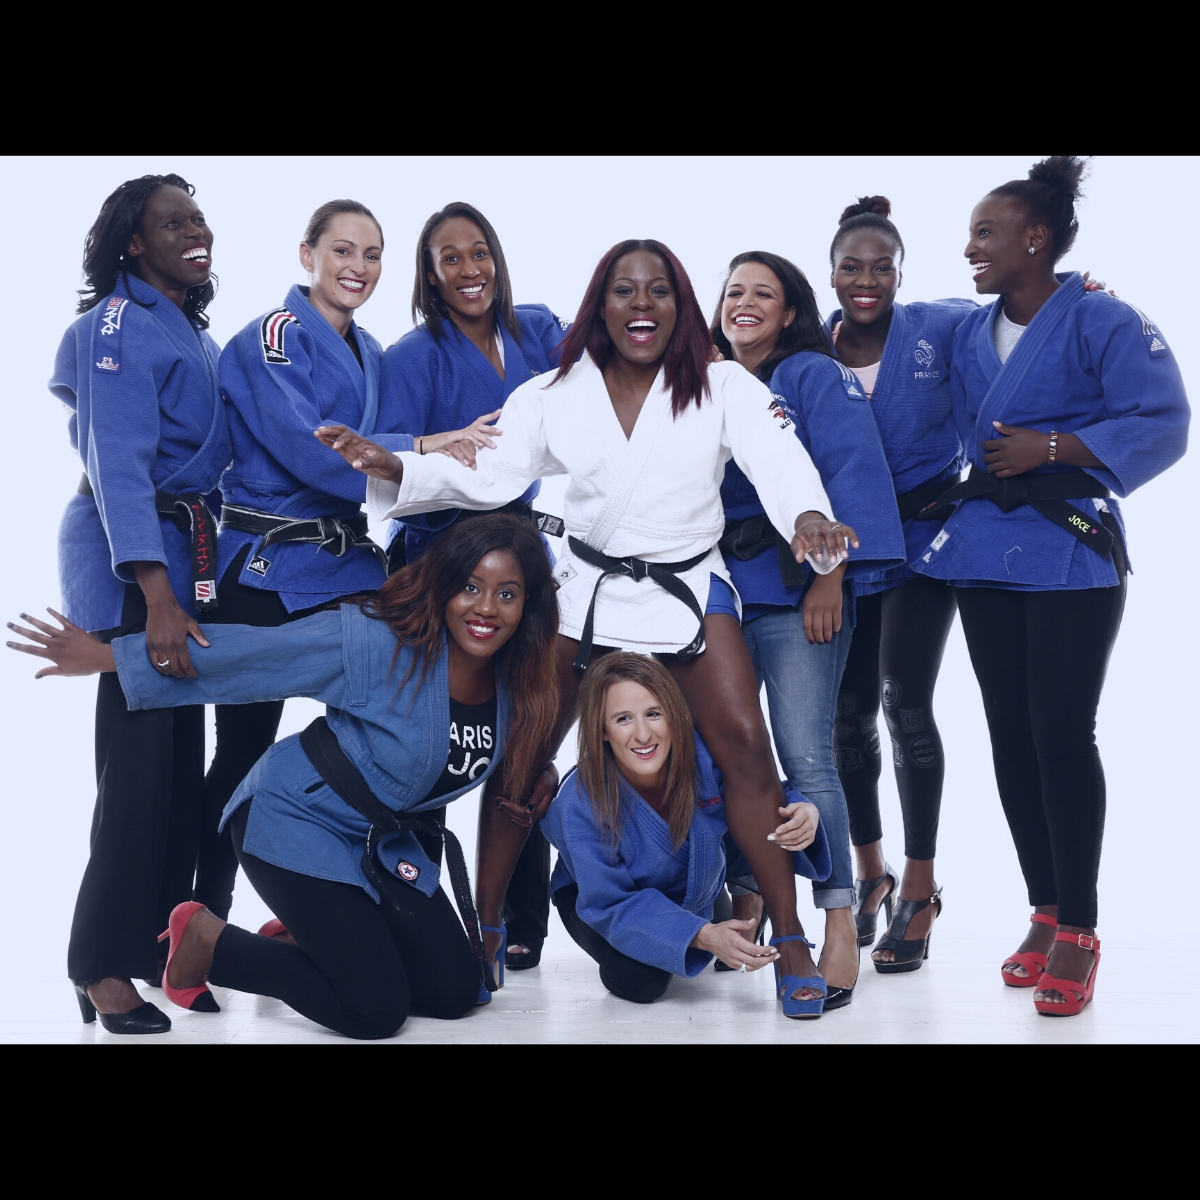 Séance Photo Groupe Shooting Photo evjf - equipe de france de judo